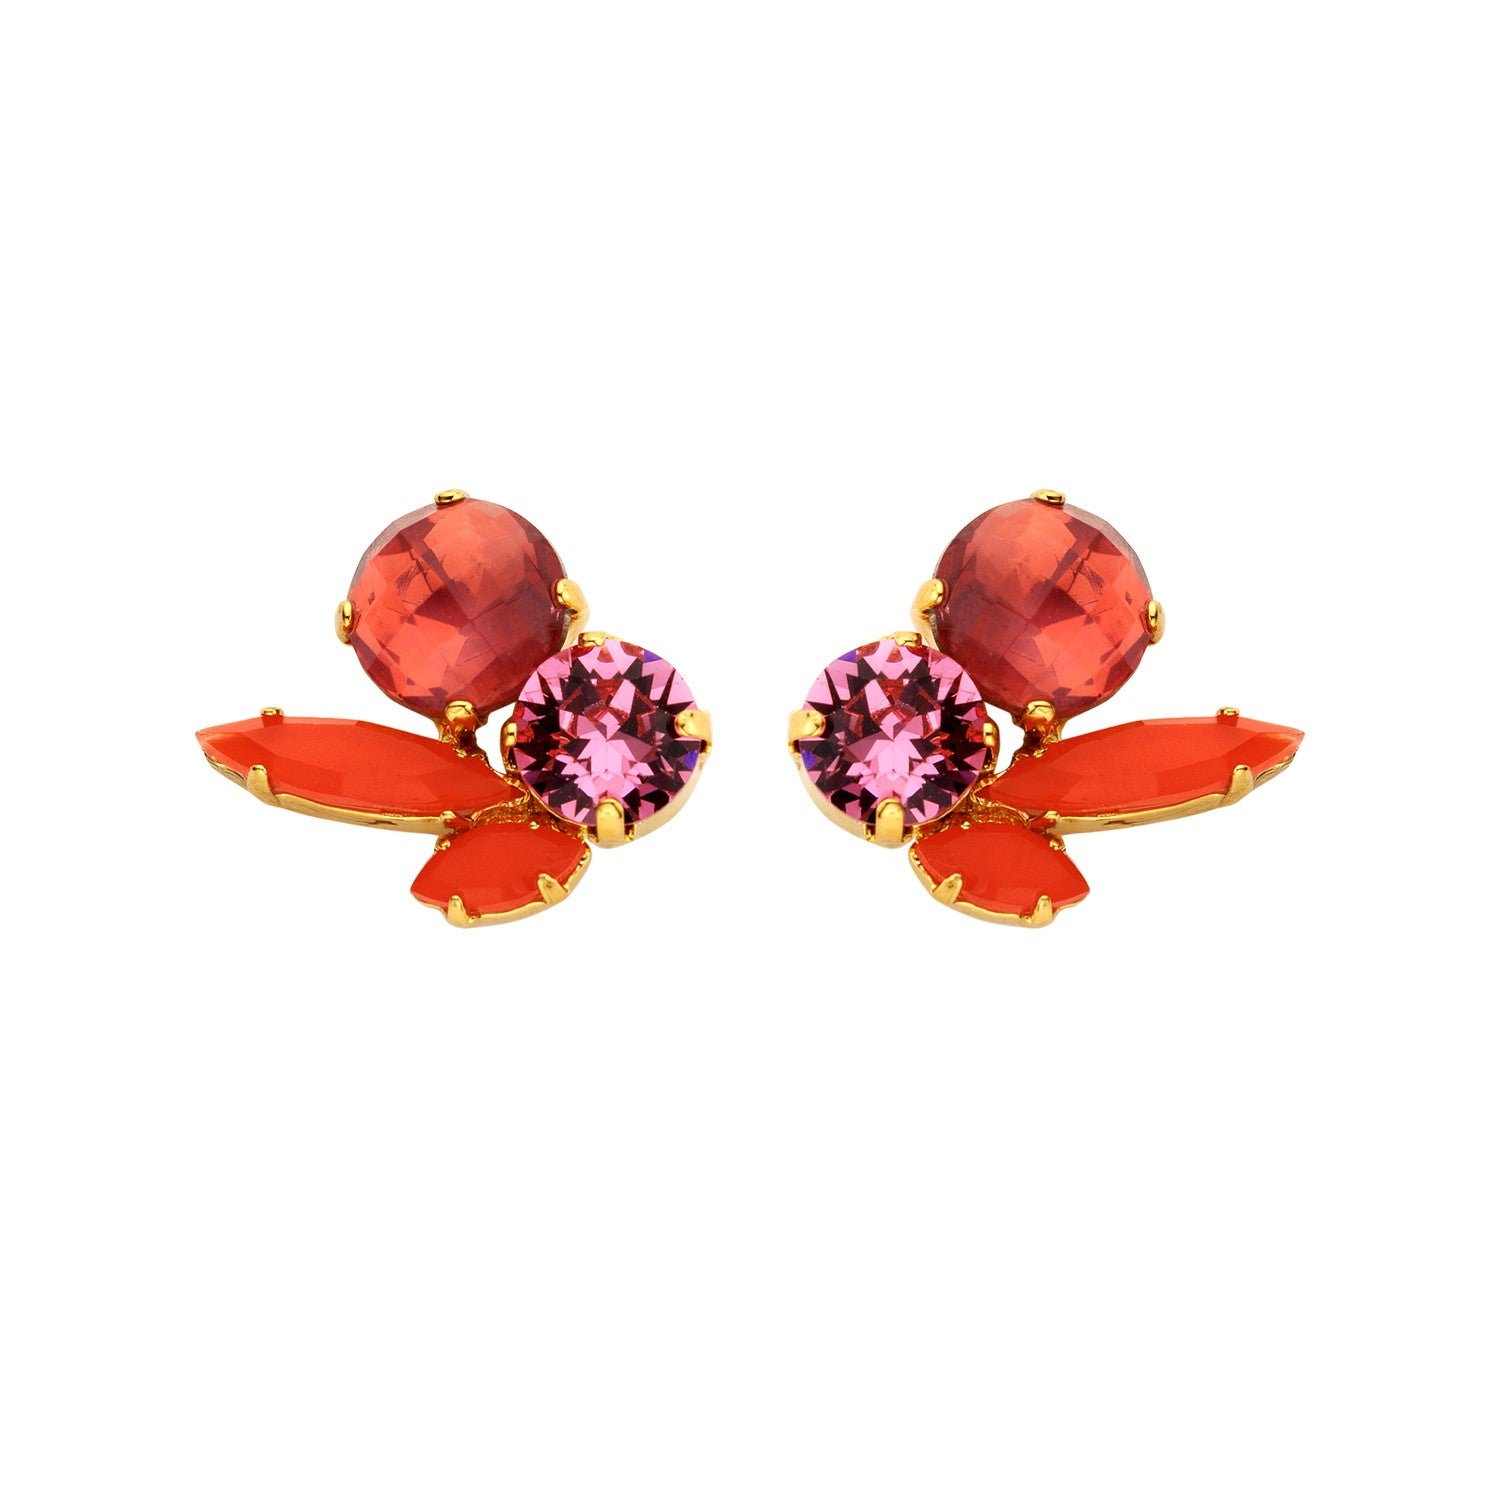 Cleo short peach earrings - Souvenirs de Pomme